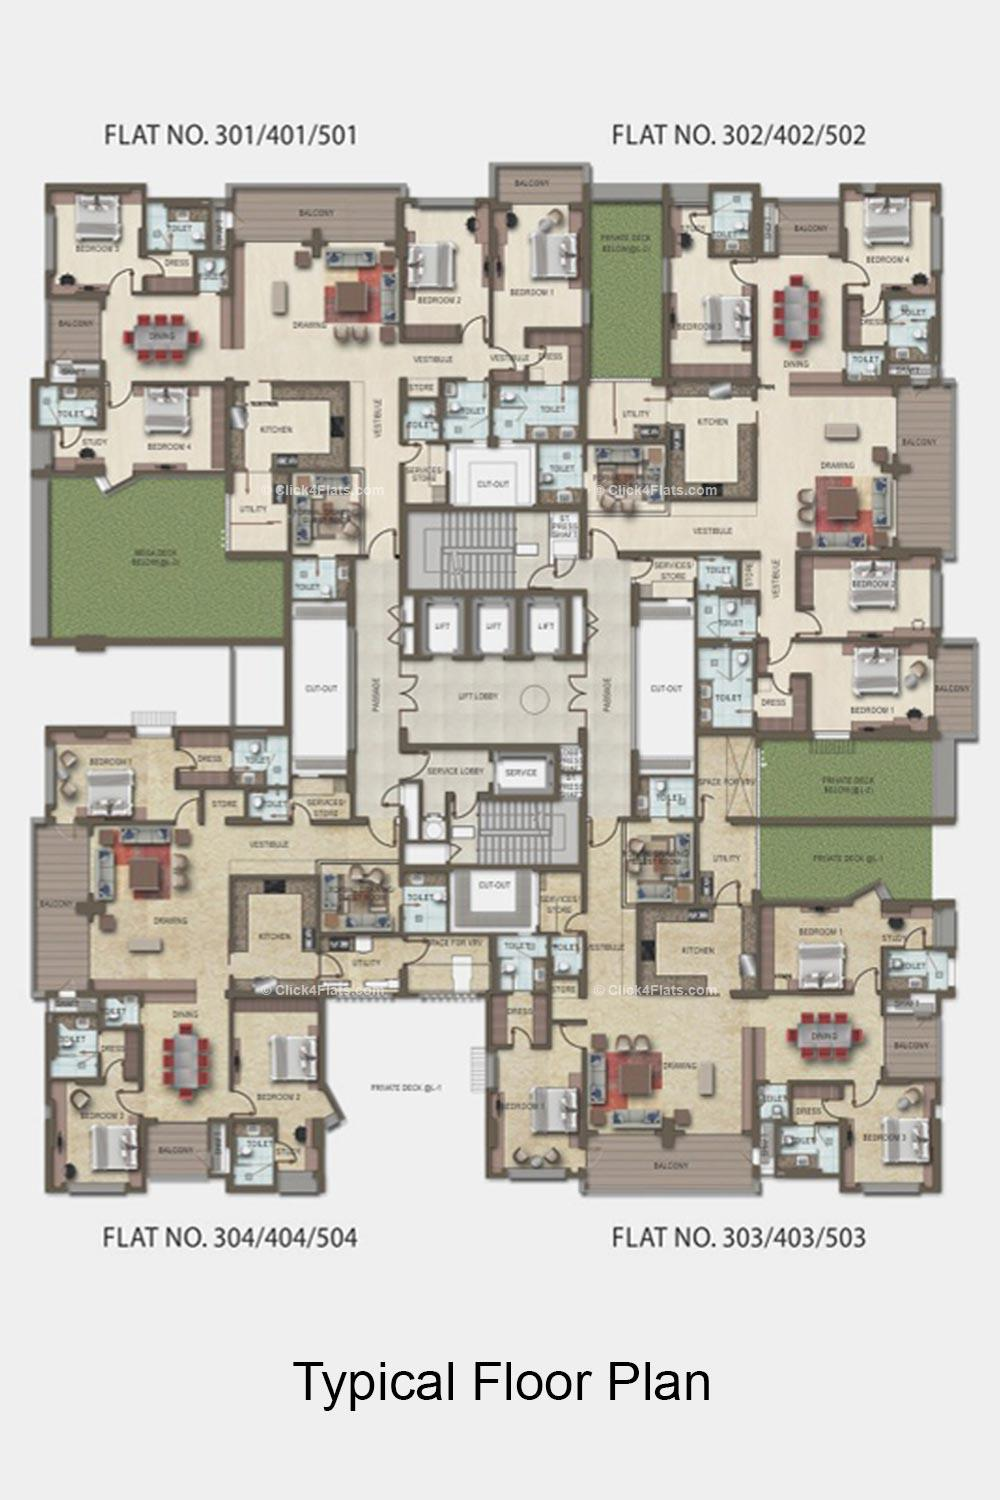 Argus Typical Floor Plan (1st to 5th Floor)